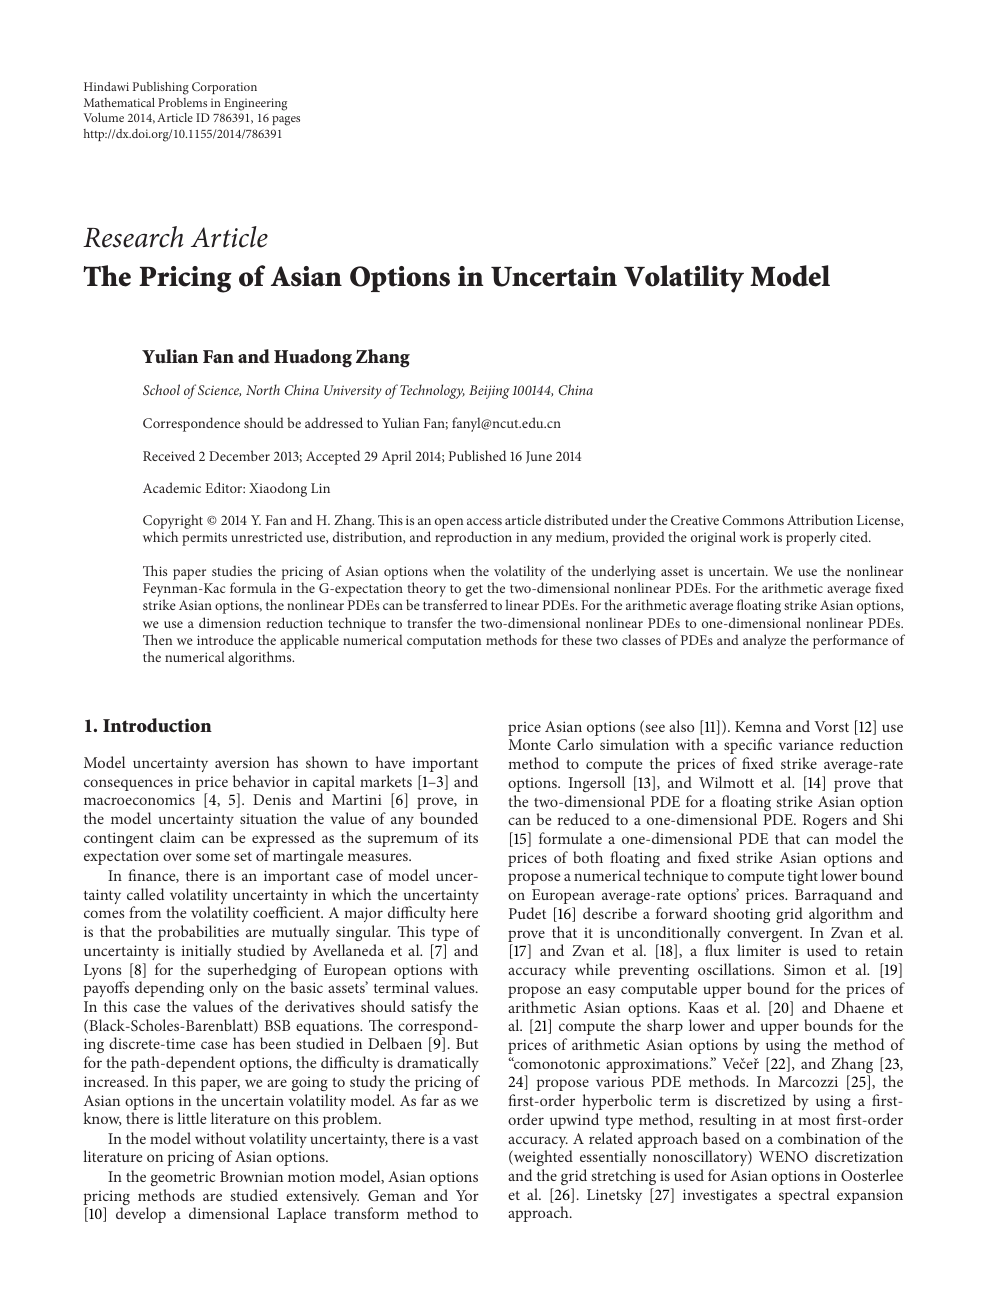 The Pricing of Asian Options in Uncertain Volatility Model – topic